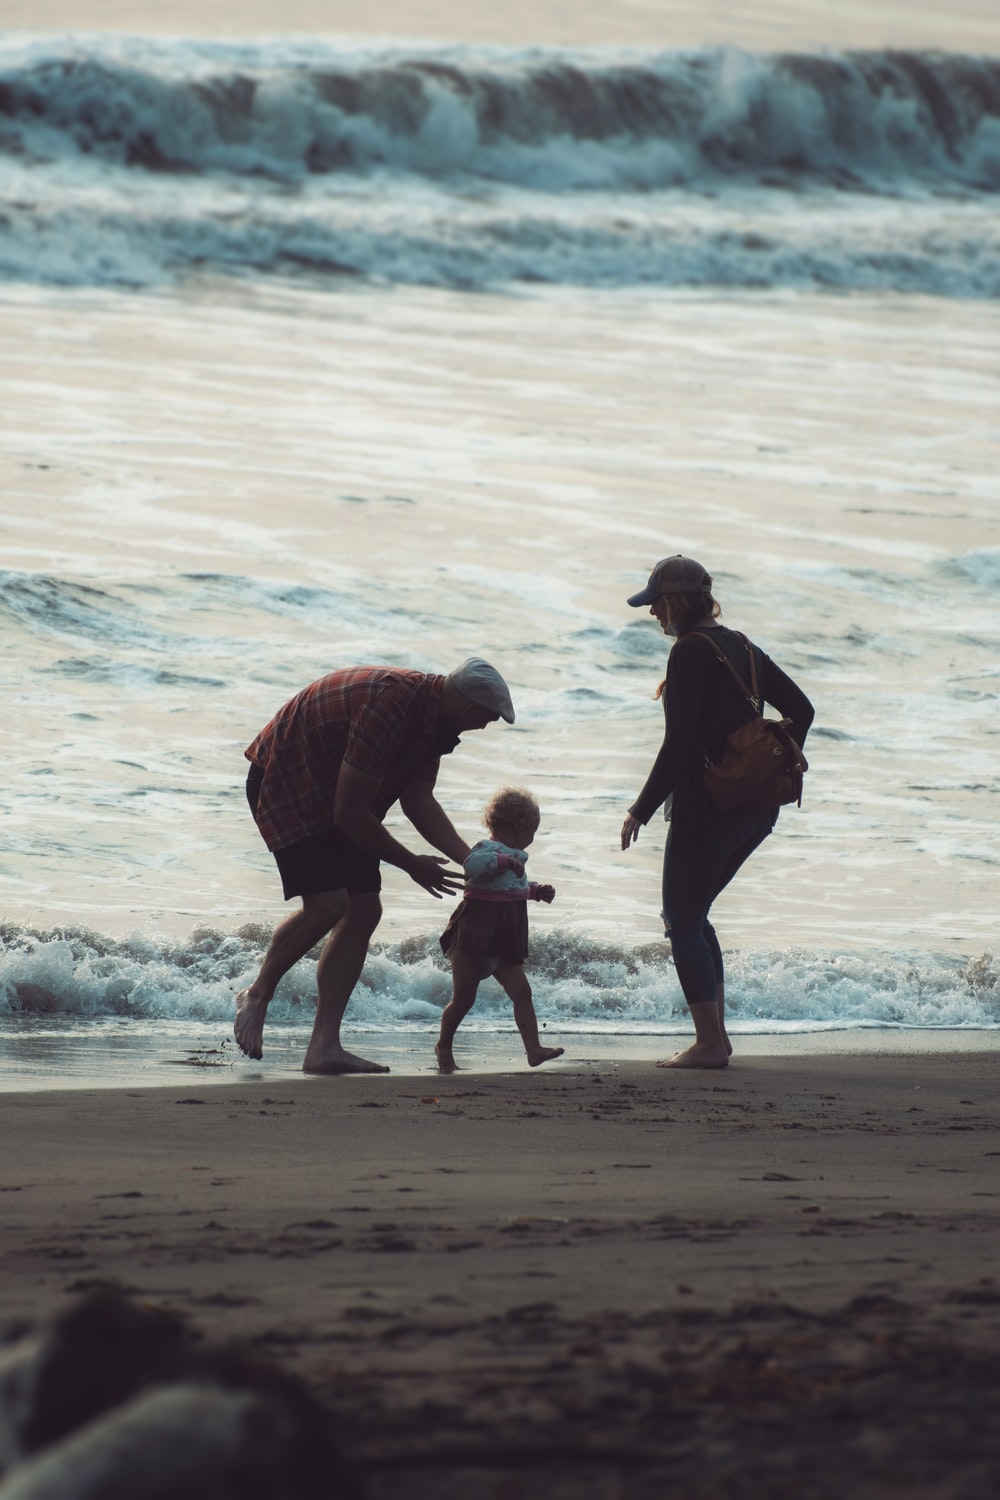 man in black jacket carrying child in red jacket on beach during daytime